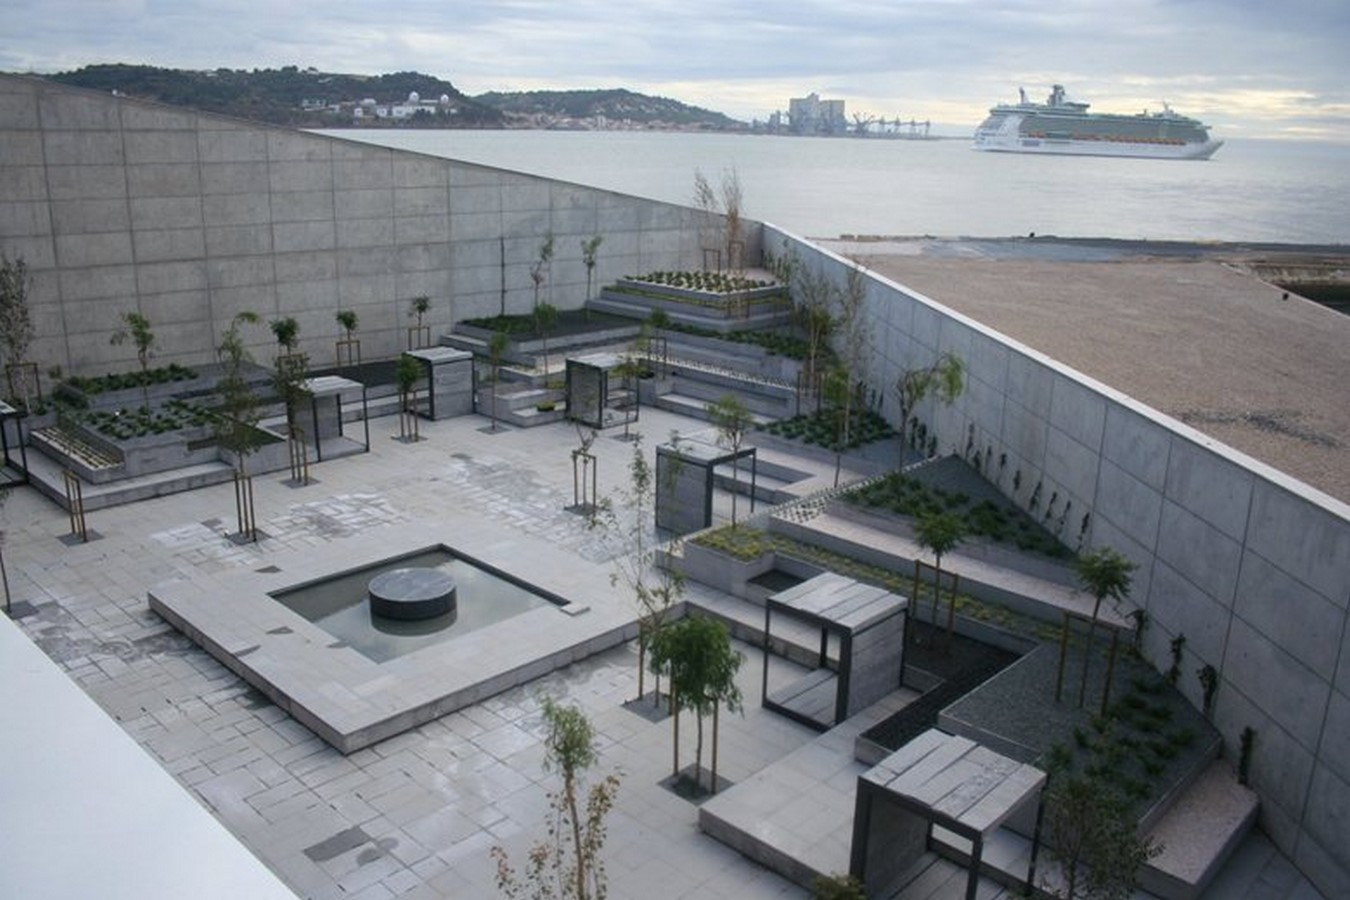 Champalimaud Centre by Charles Correa: Architecture as Beauty, Beauty as therapy - Sheet6